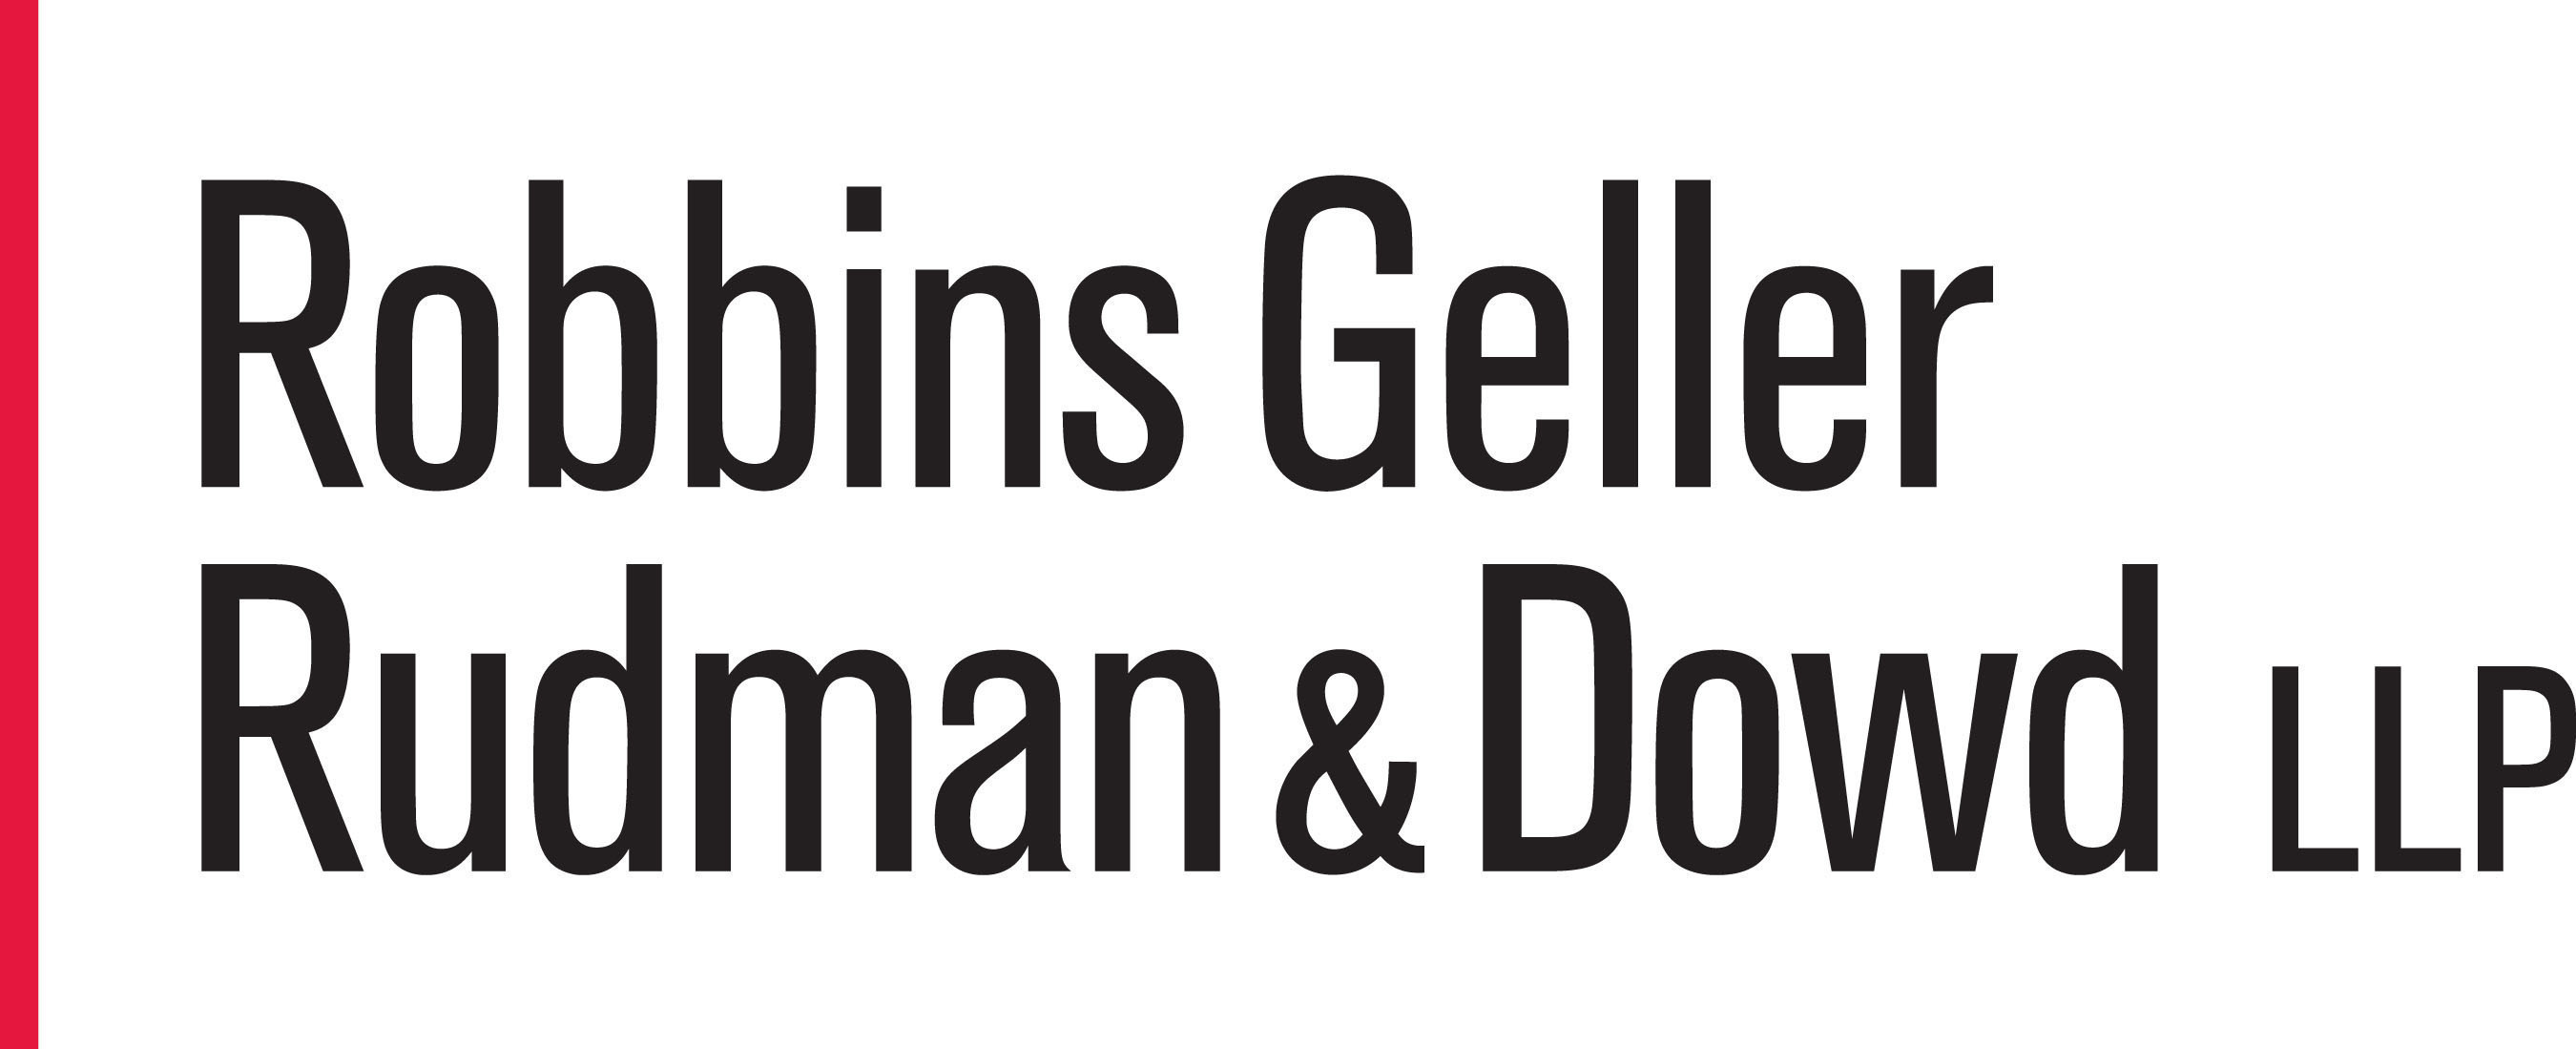 Robbins Geller, with 200 lawyers in ten offices, represents U.S. and international institutional investors in ...